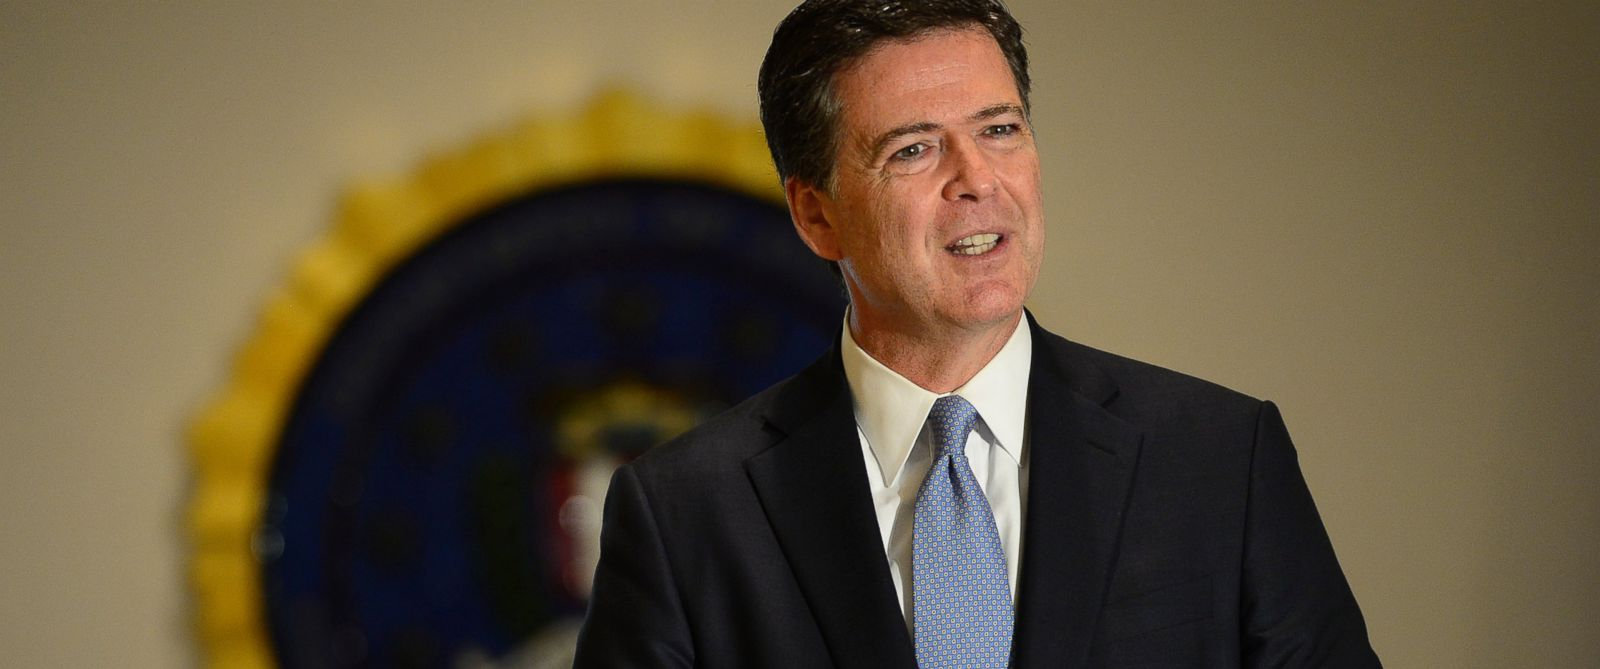 PHOTO:FBI Director James Comey answers questions from the media during a press conference, July 23, 2015 at the FBI Denver Field Office in Denver.